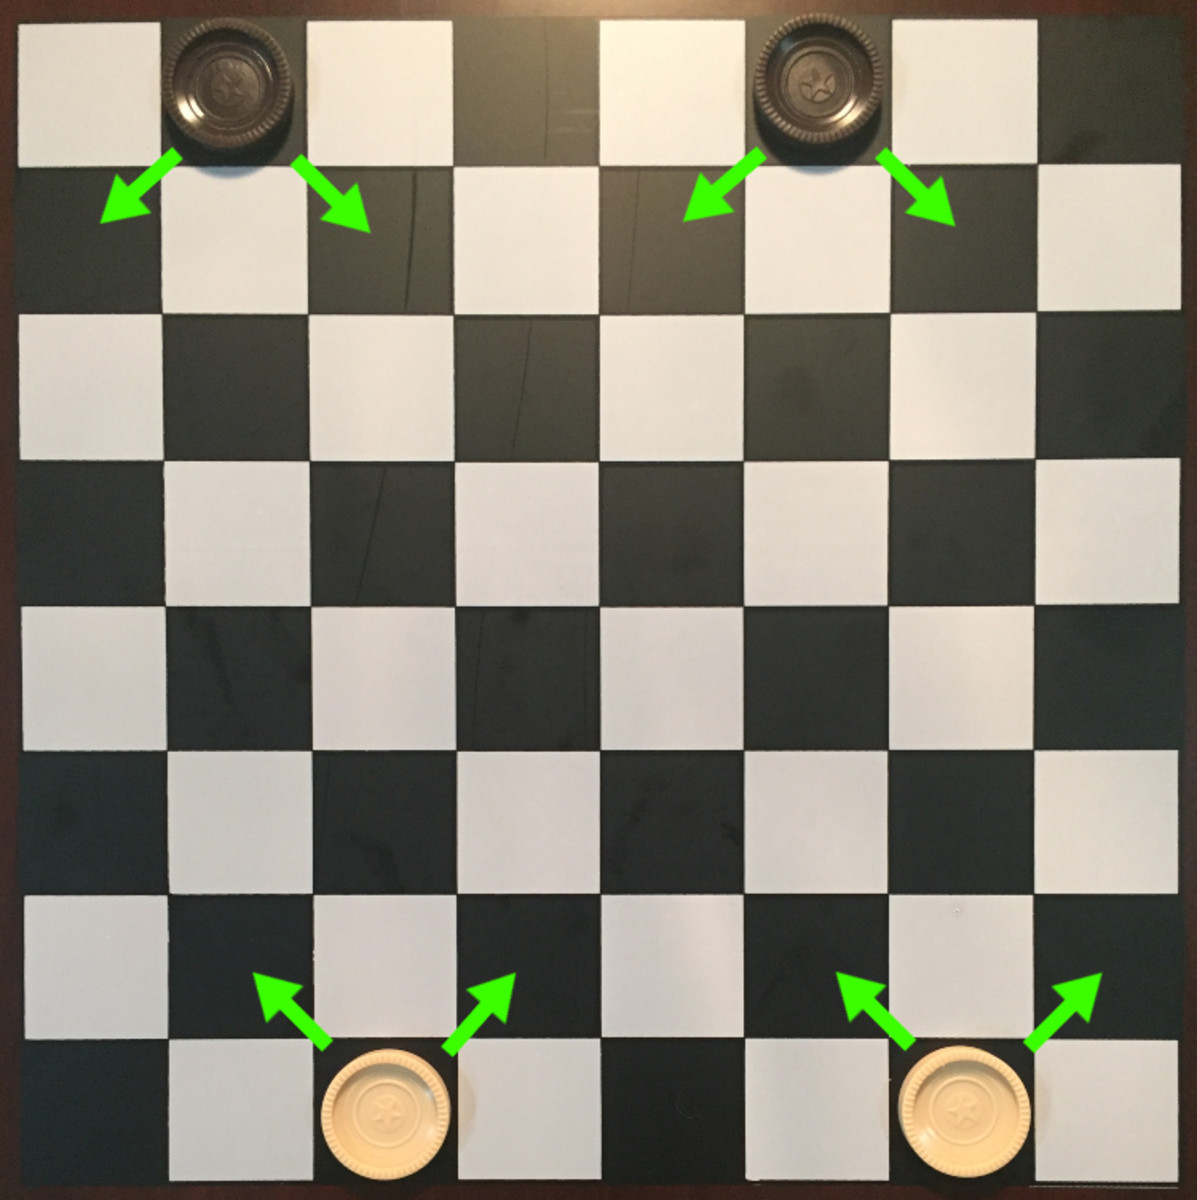 checkers-strategy-tactics-how-to-win